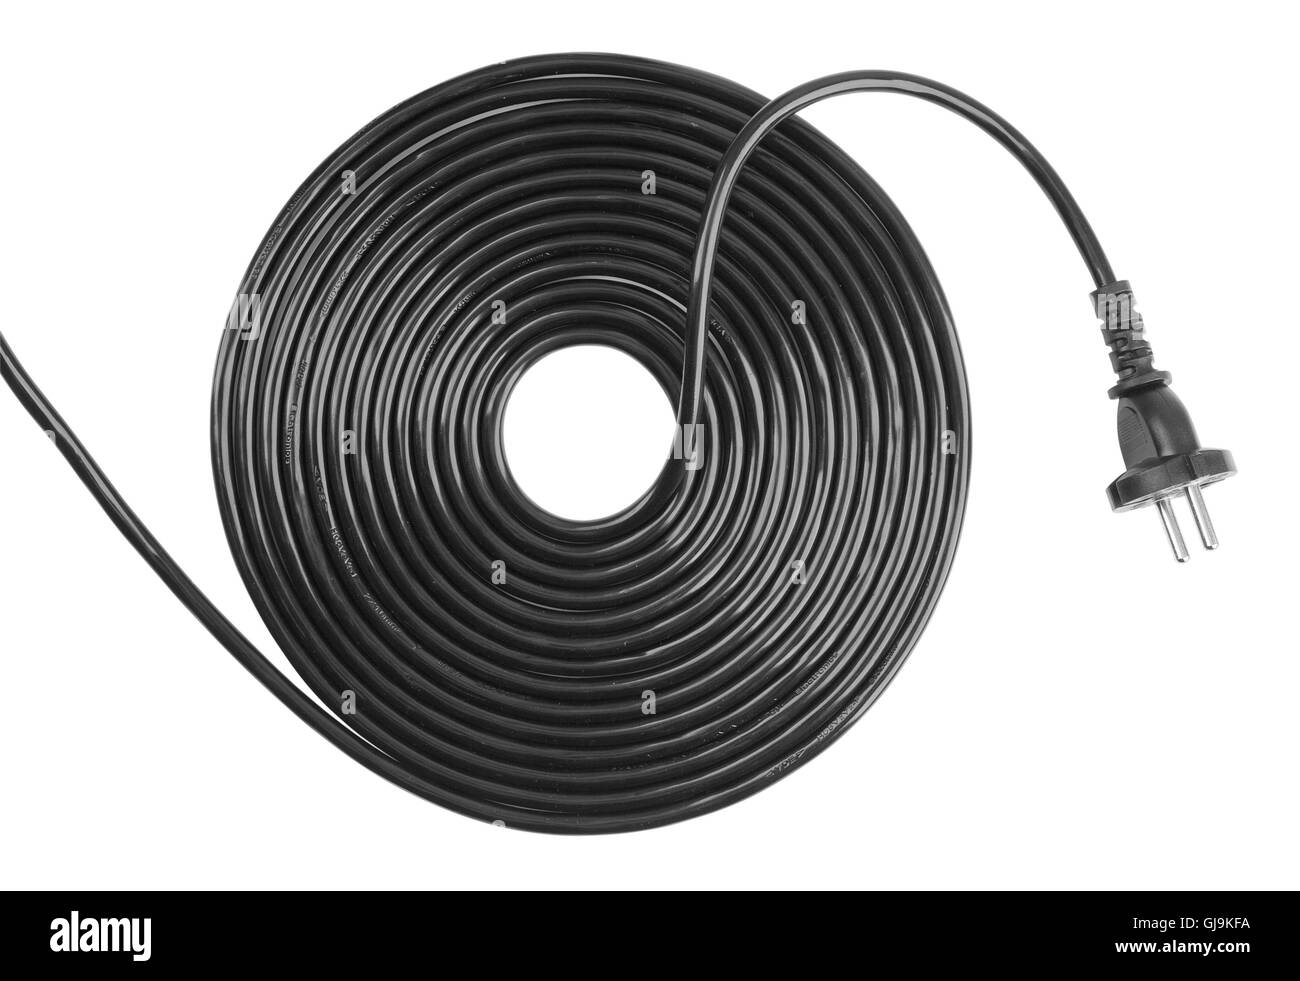 Electric Wire Black and White Stock Photos & Images - Alamy